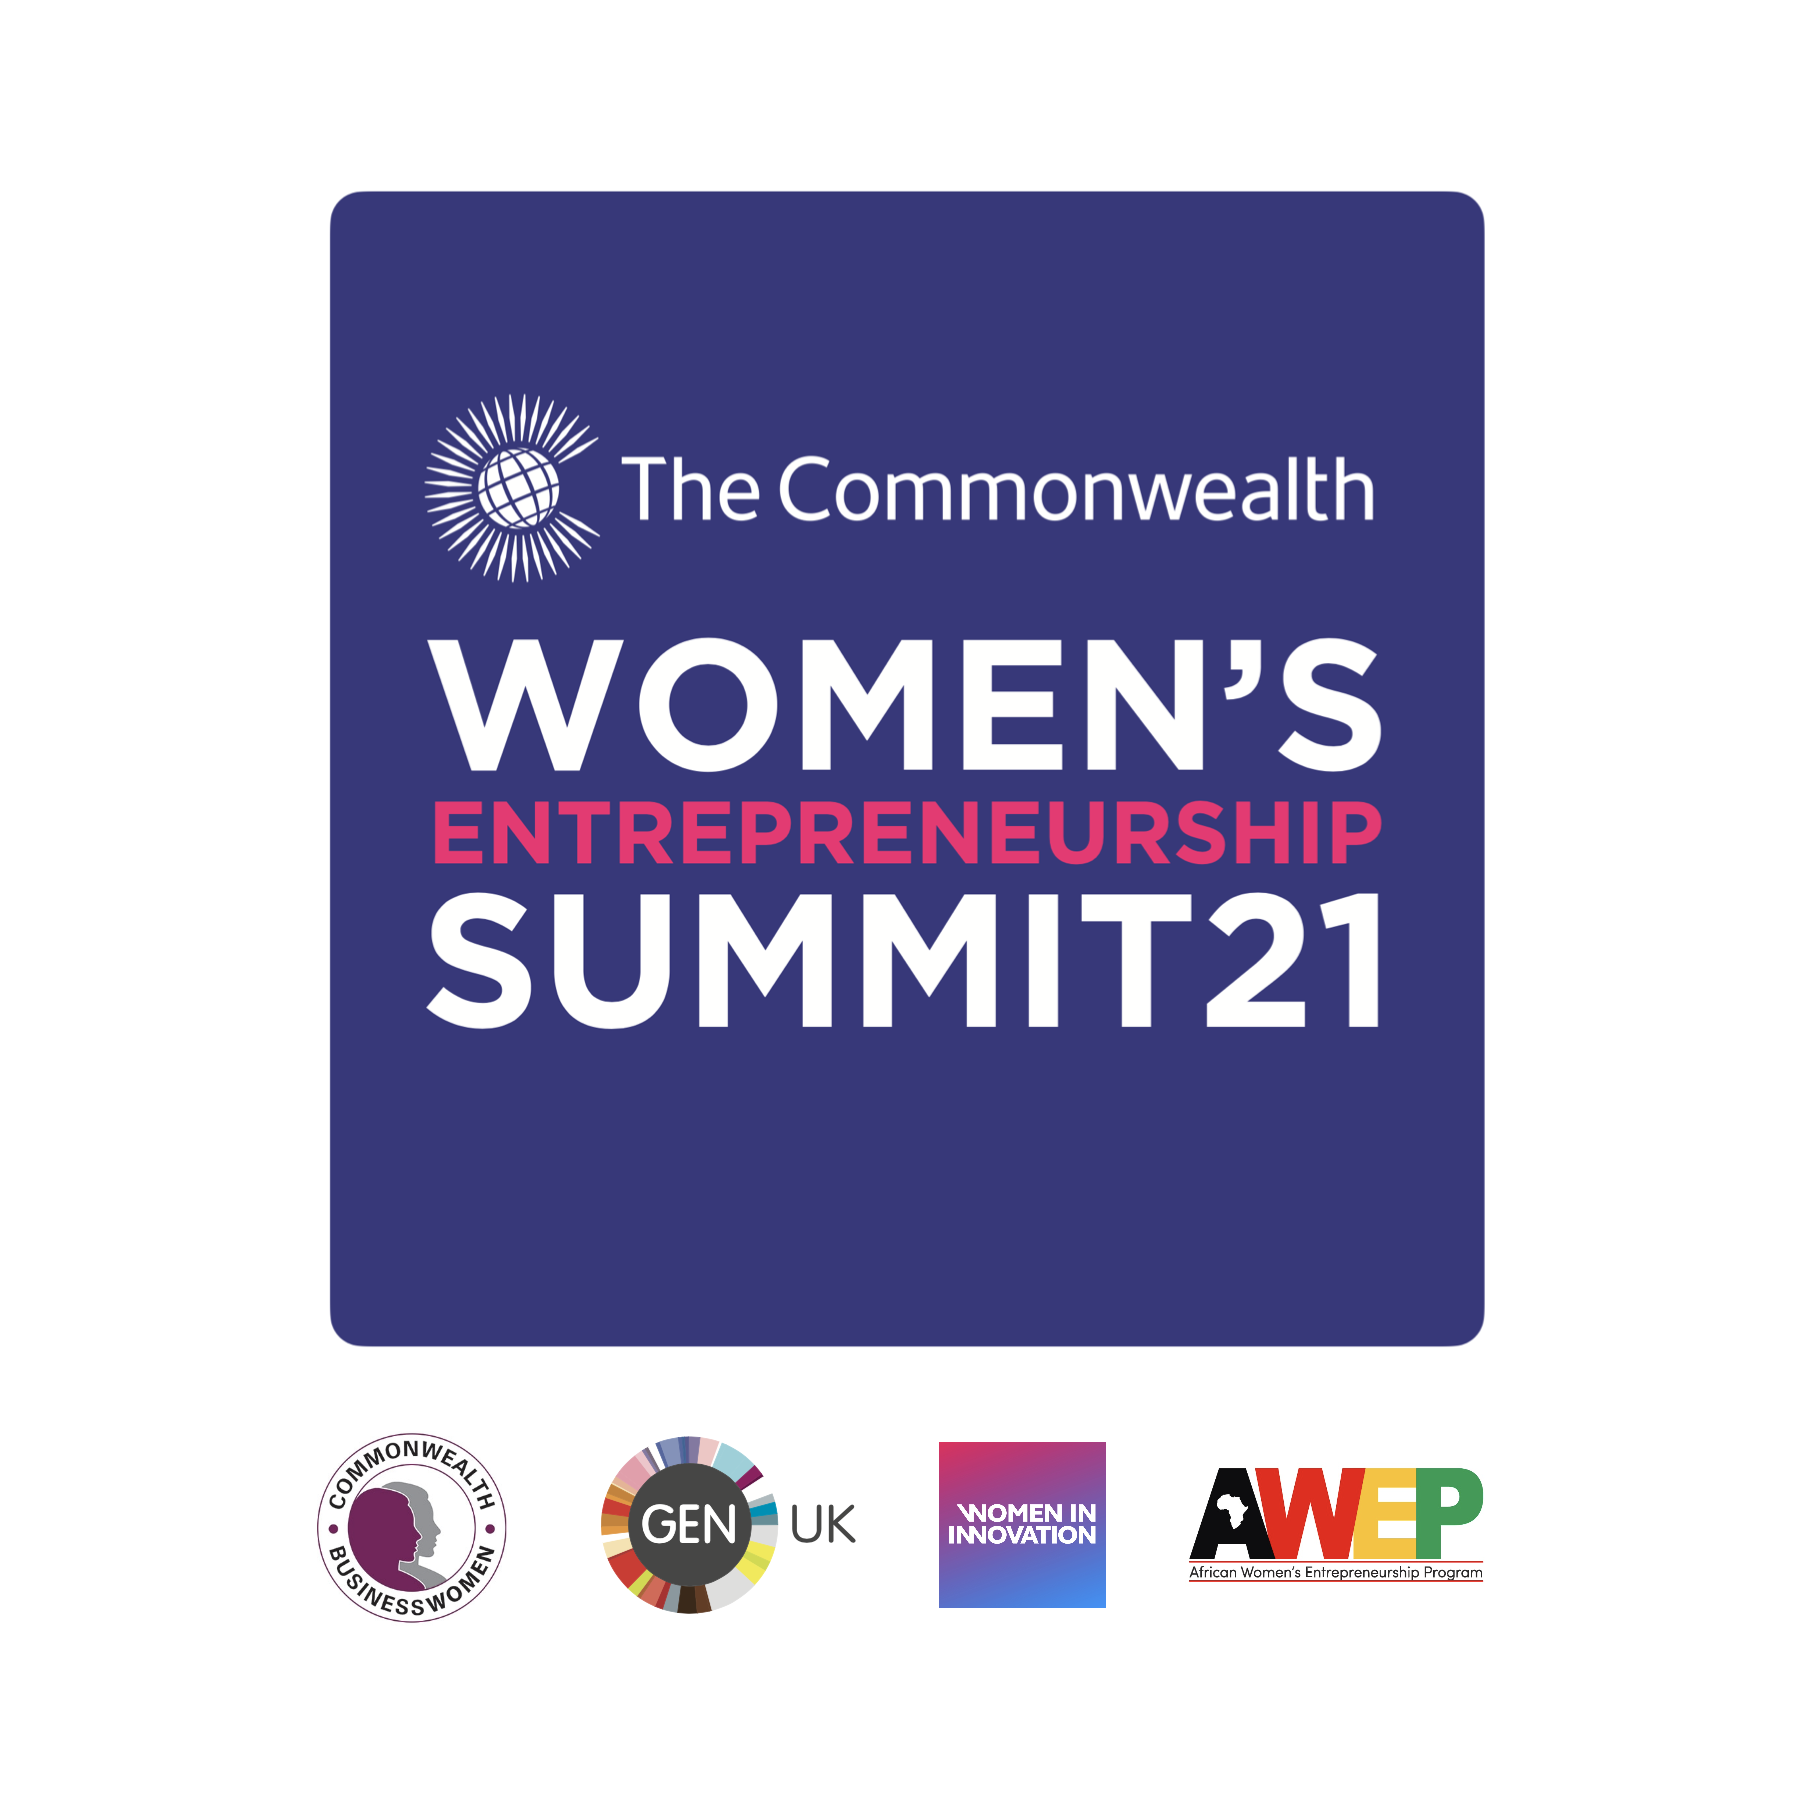 Commonwealth Women's Entrepreneurship Summit 21